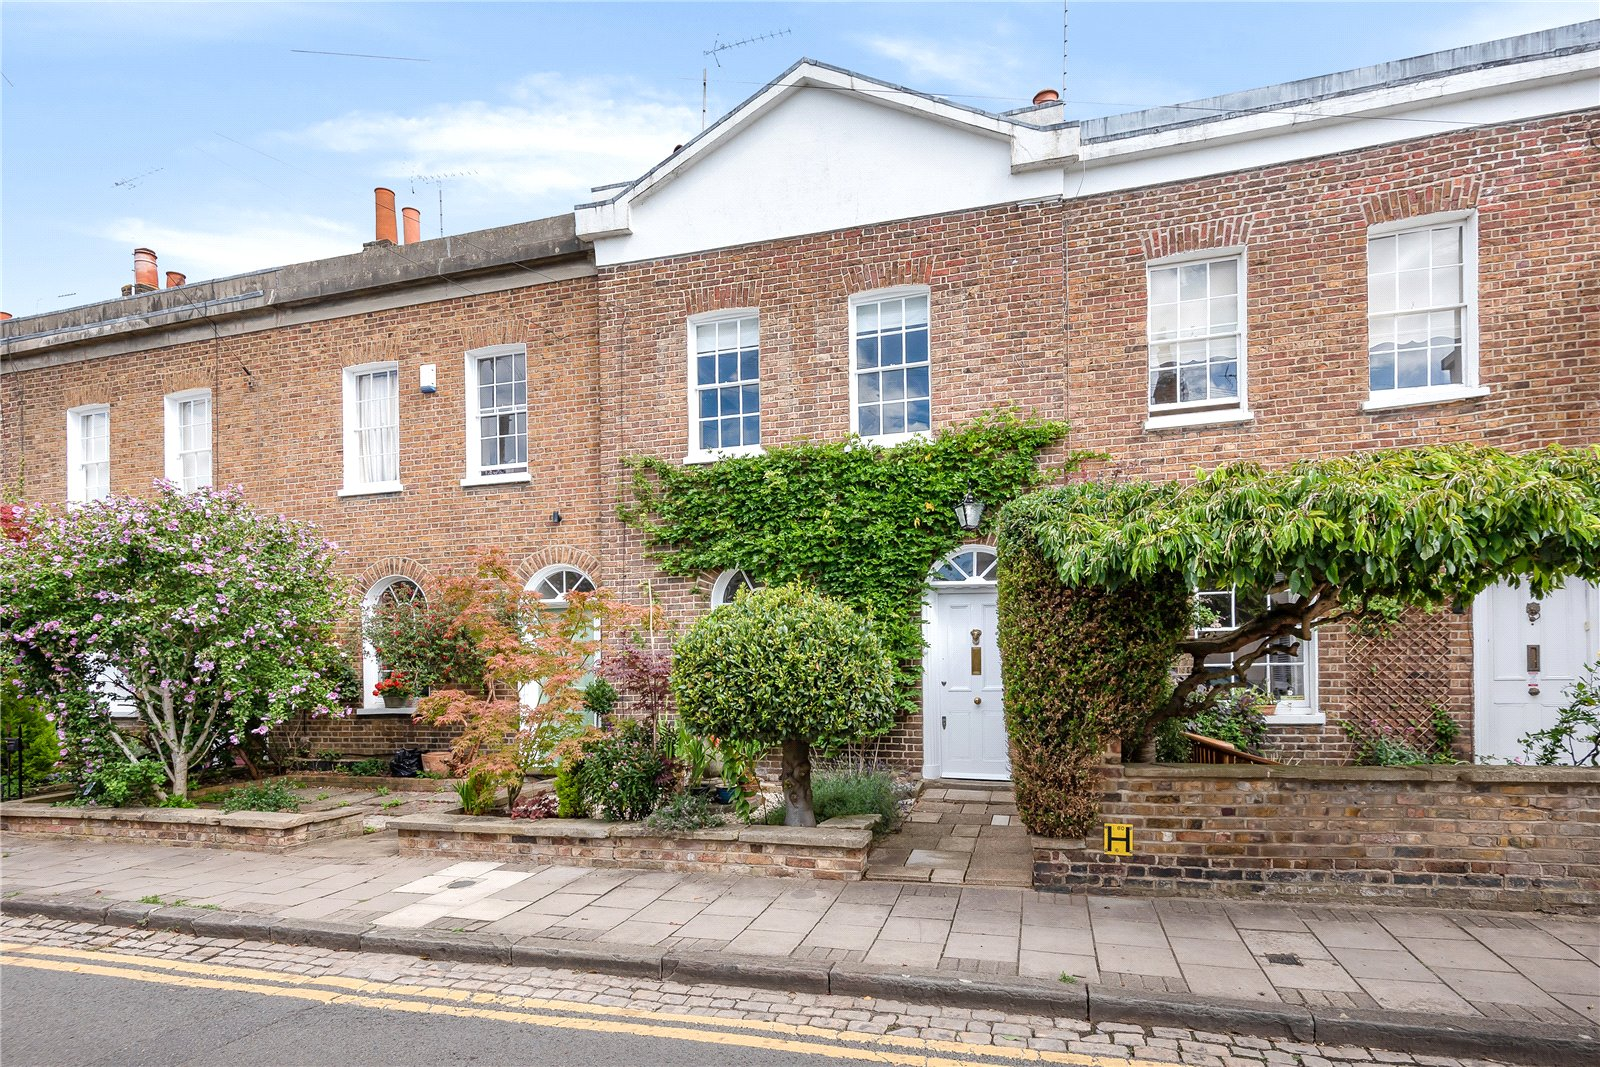 Grade II Listed Georgian terraced house in Golden Triangle of Windsor